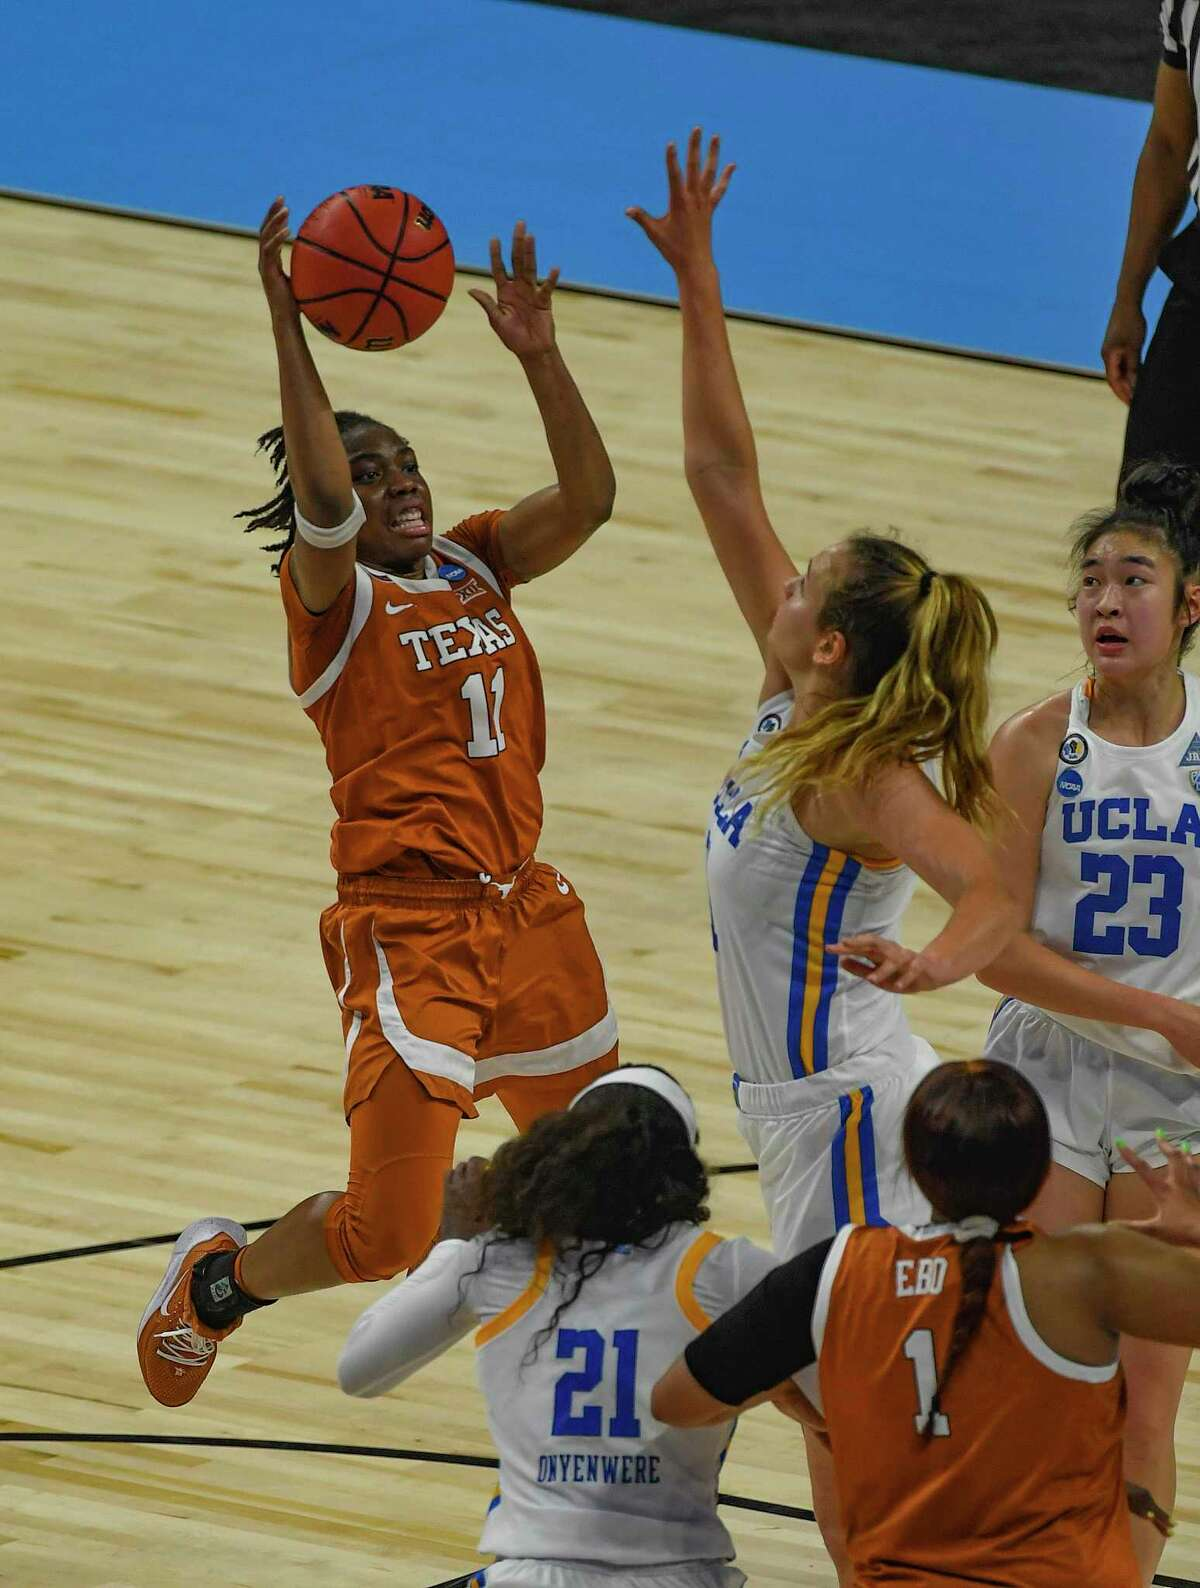 Joanne Allen-Taylor reaches for the ball during action against UCLA in the NCAA Women's Basketball Championship tournament in the Alamodome on Wednesday, March 24, 2021.